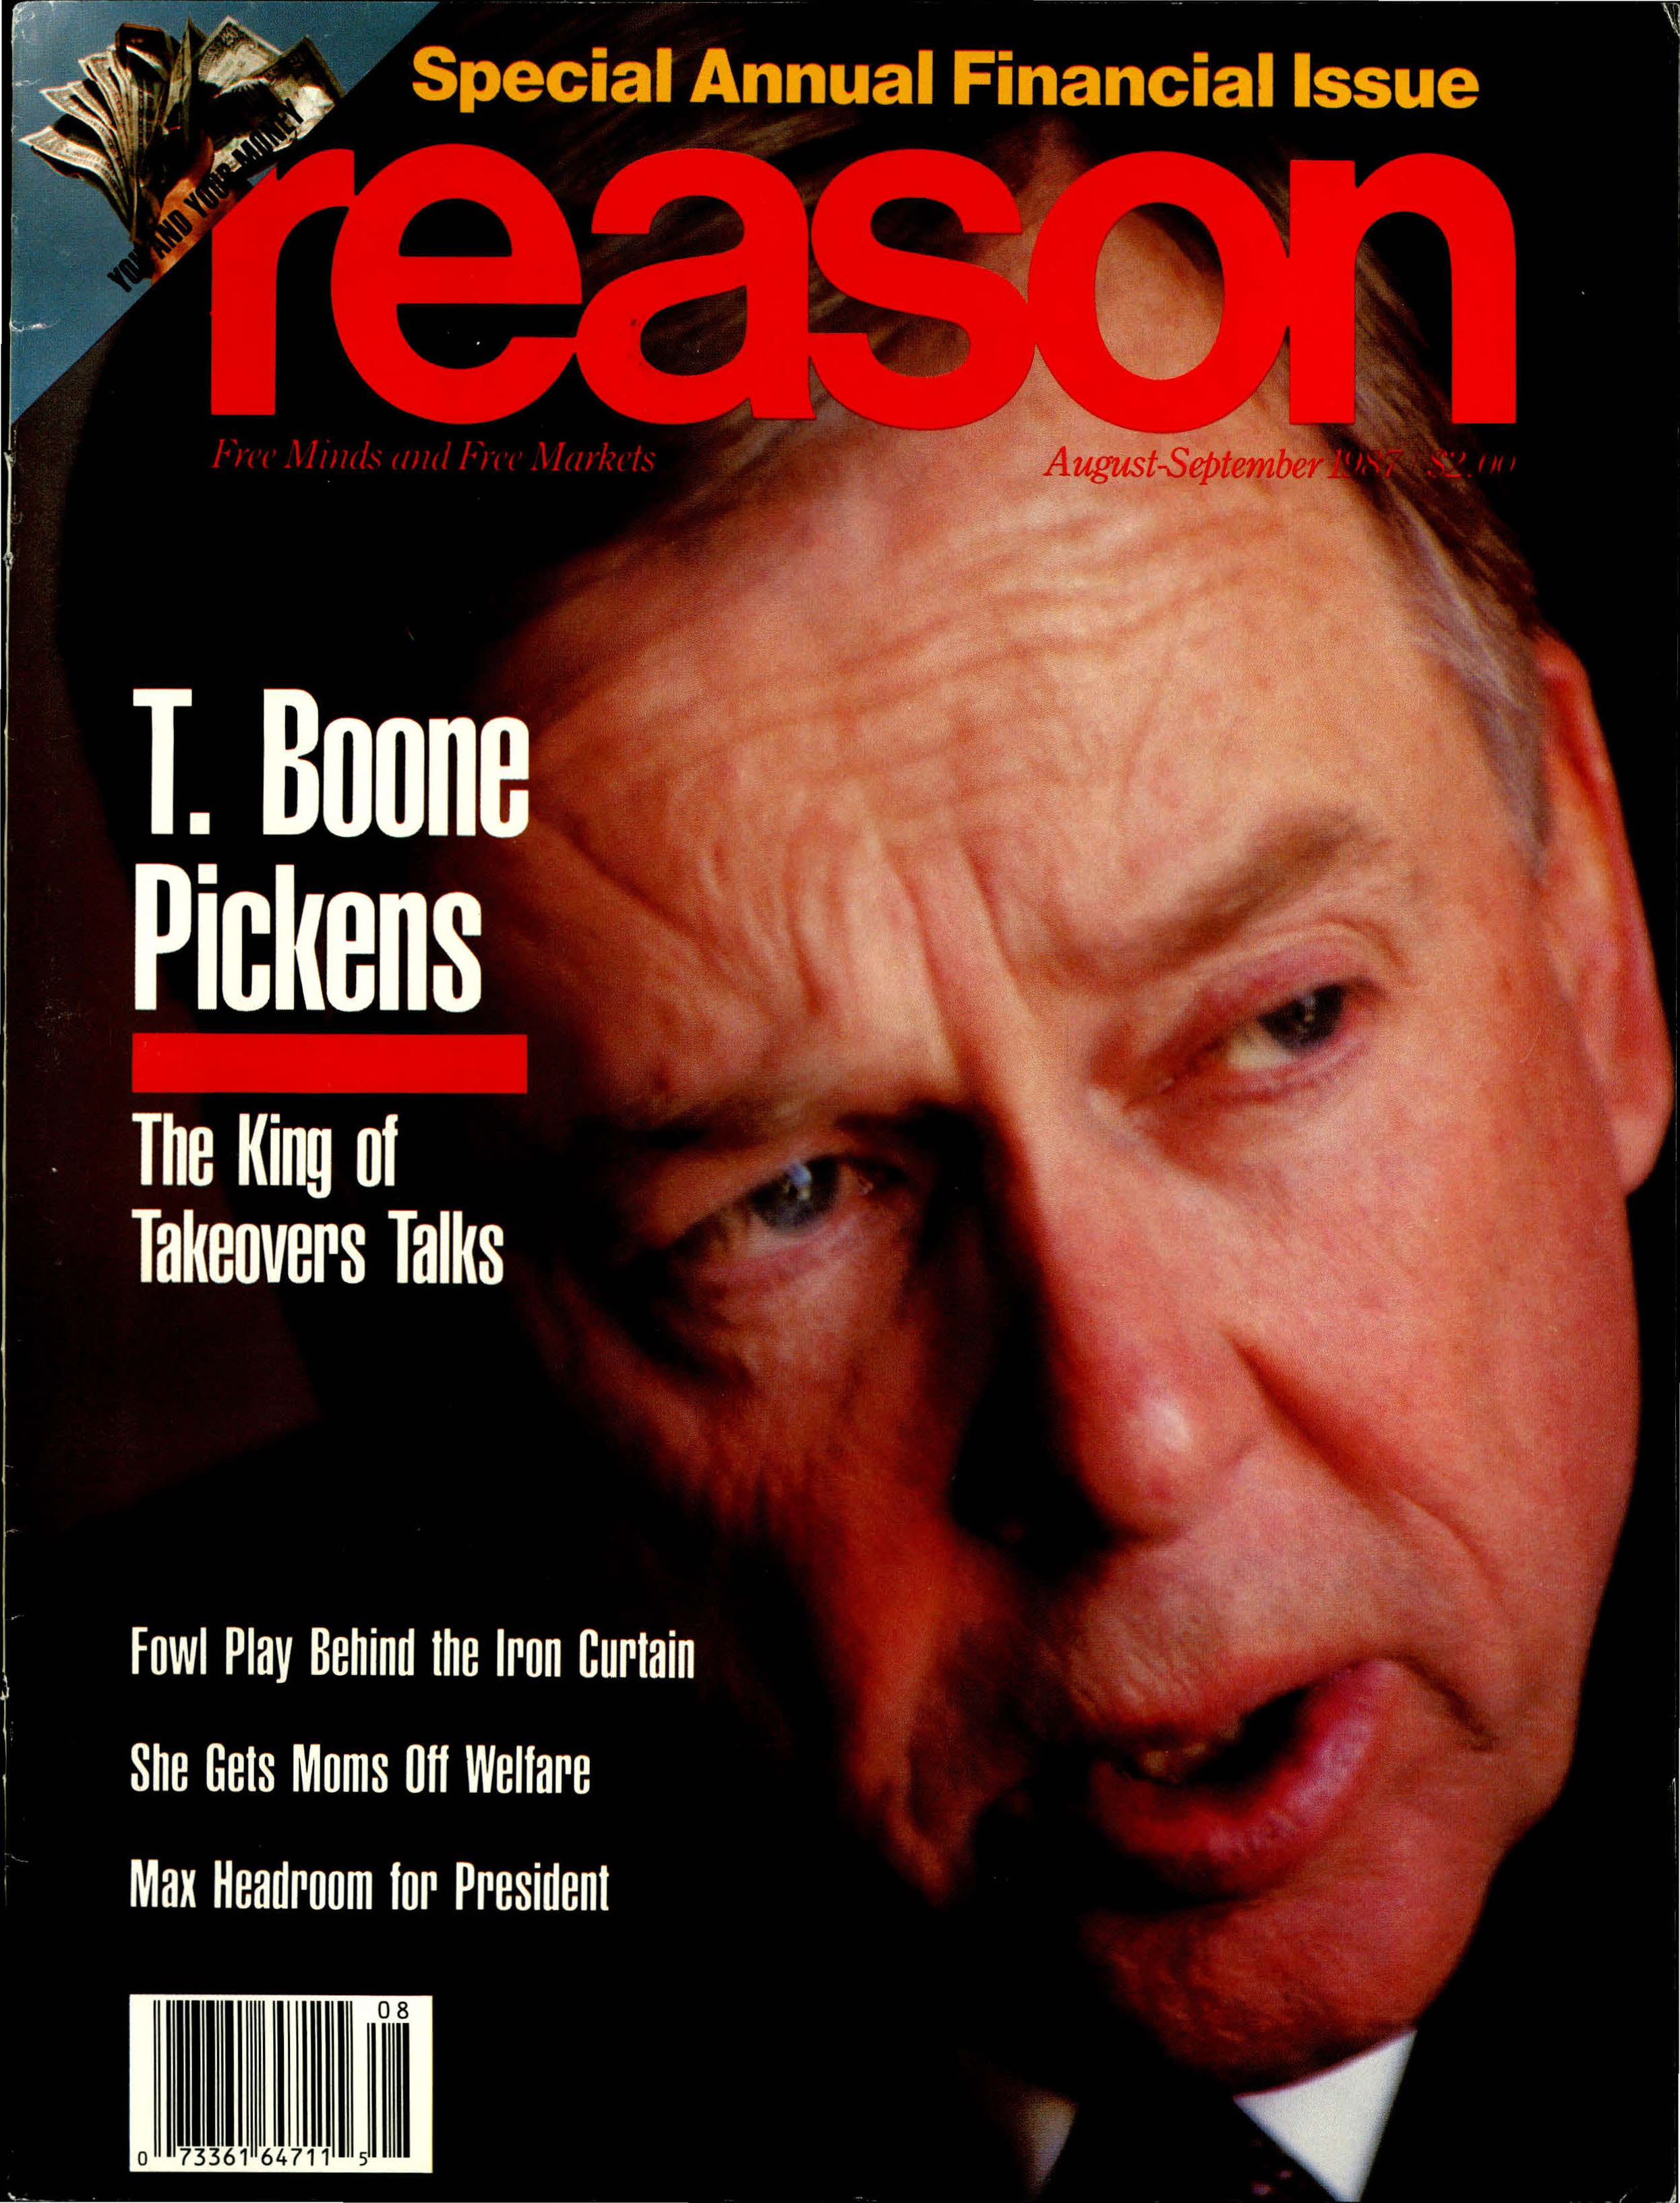 Reason Magazine, August/September 1987 cover image